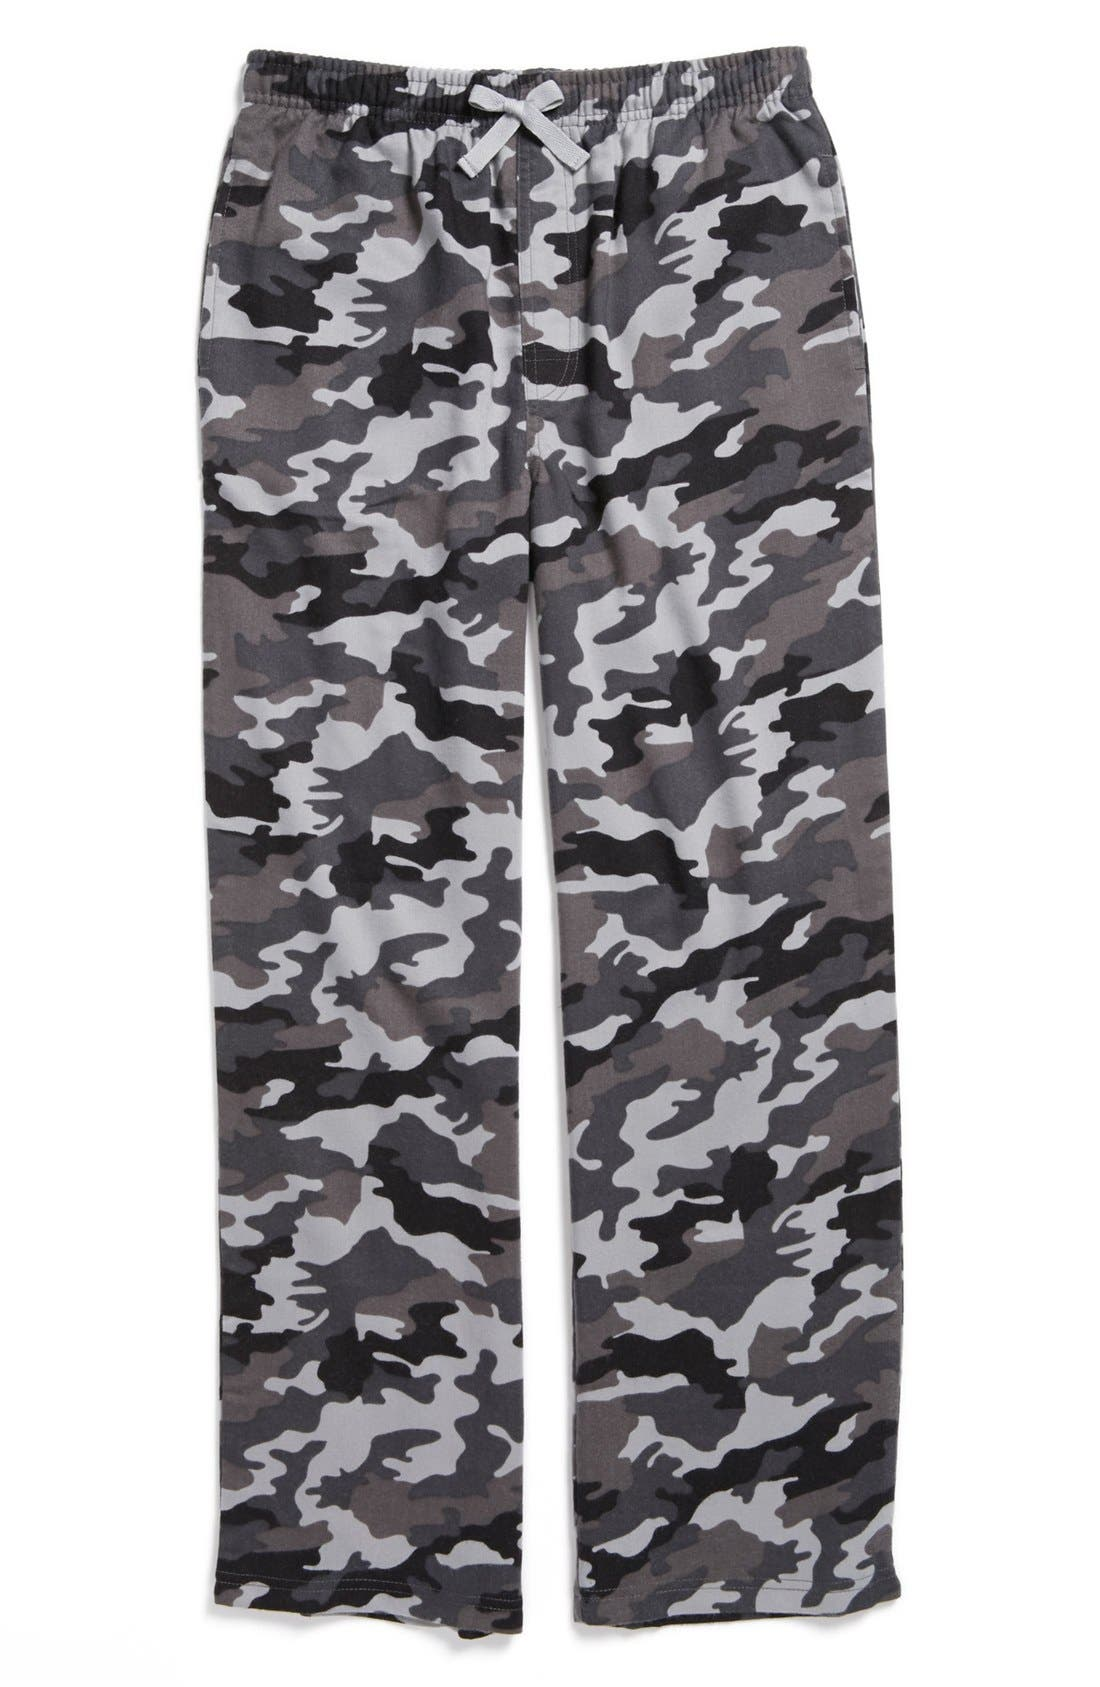 Alternate Image 1 Selected - Tucker + Tate Flannel Pajama Pants (Little Boys & Big Boys)